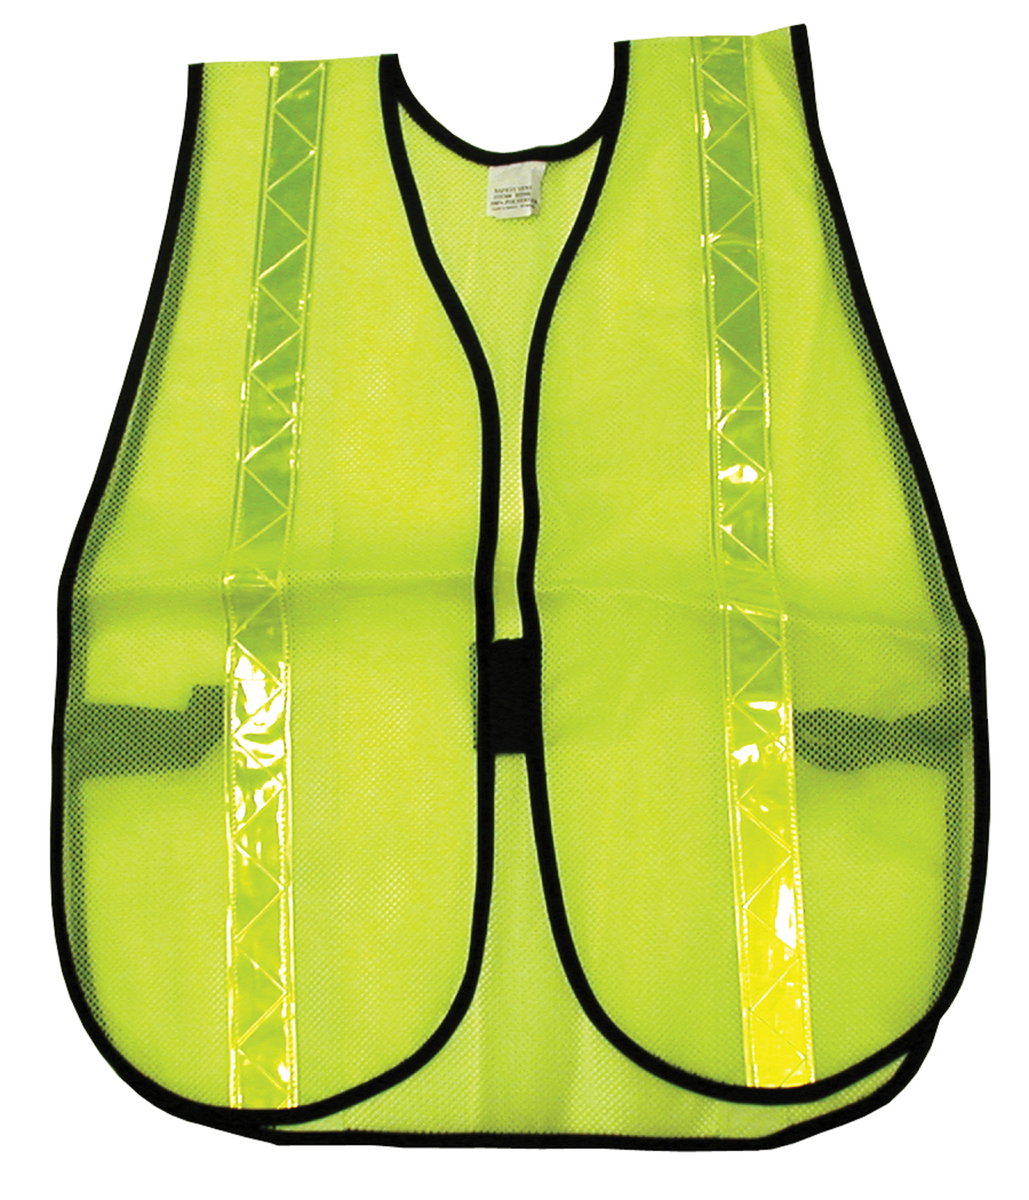 General Purpose Safety Vest, Polyester Mesh, 1 3/8